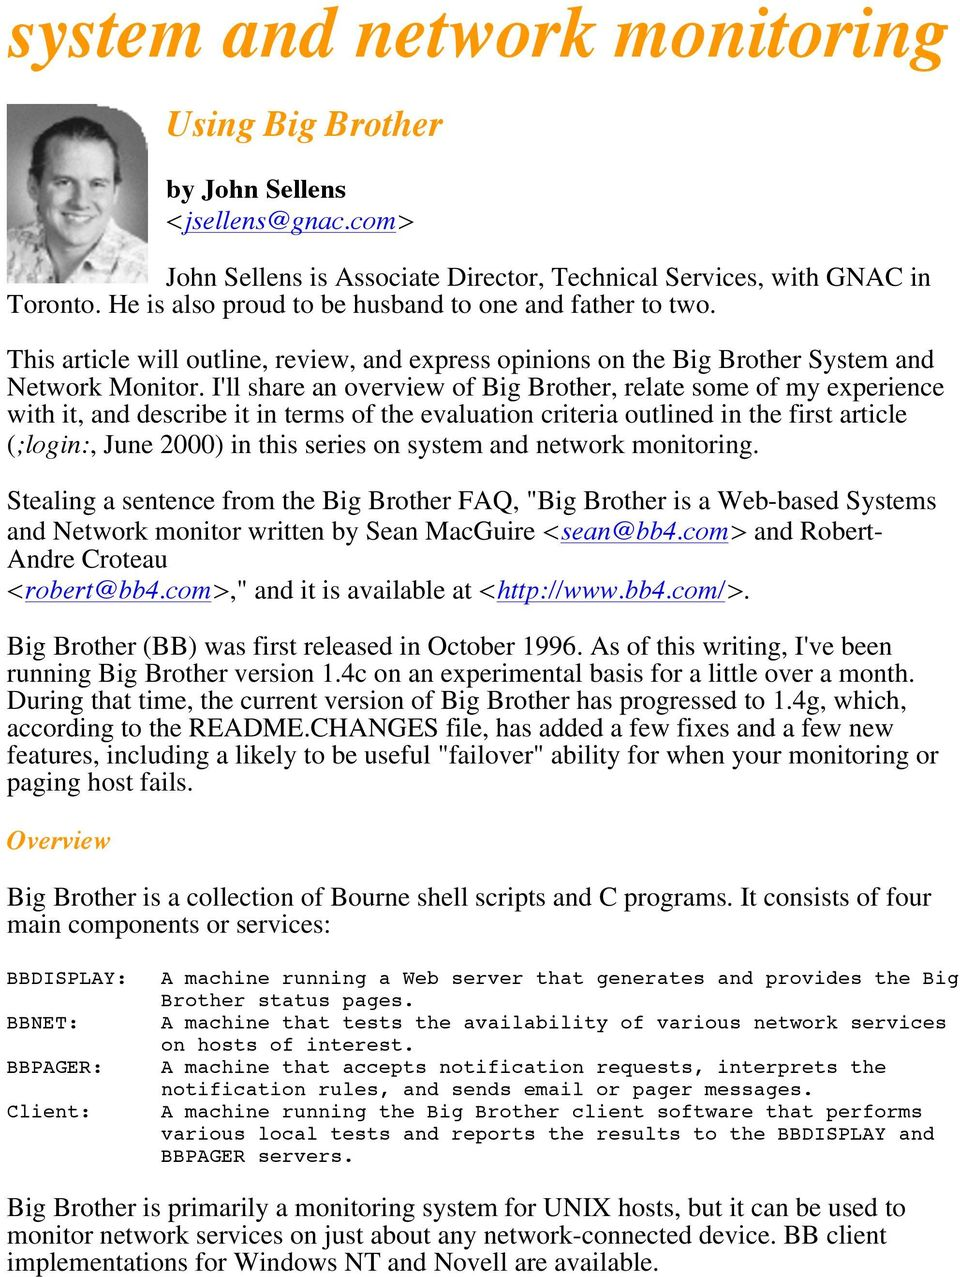 I'll share an overview of Big Brother, relate some of my experience with it, and describe it in terms of the evaluation criteria outlined in the first article (;login:, June 2000) in this series on